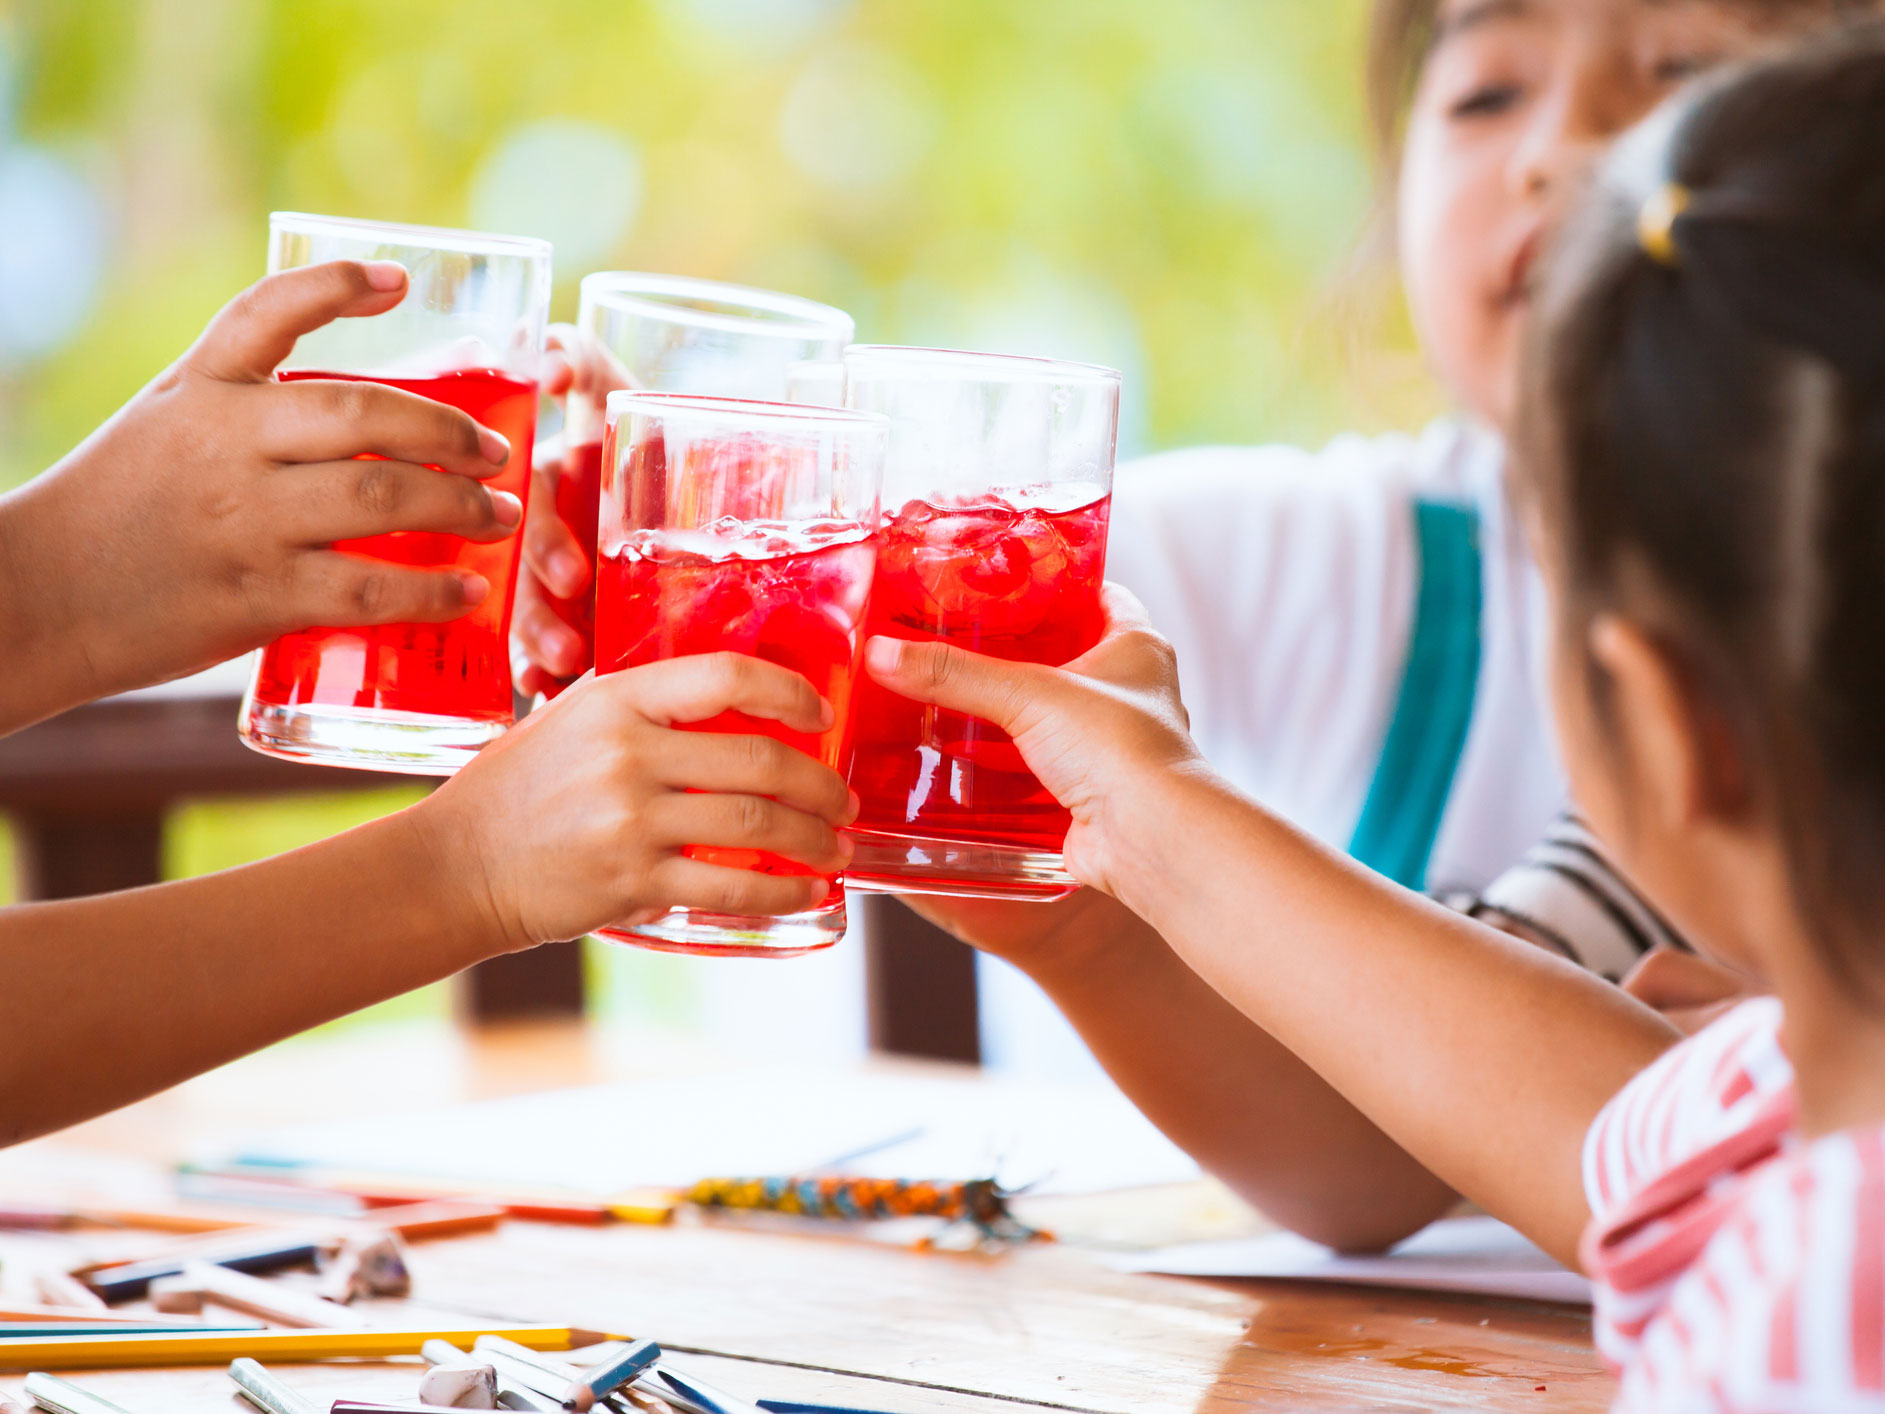 In case you missed it: Lead and arsenic found in fruit juice